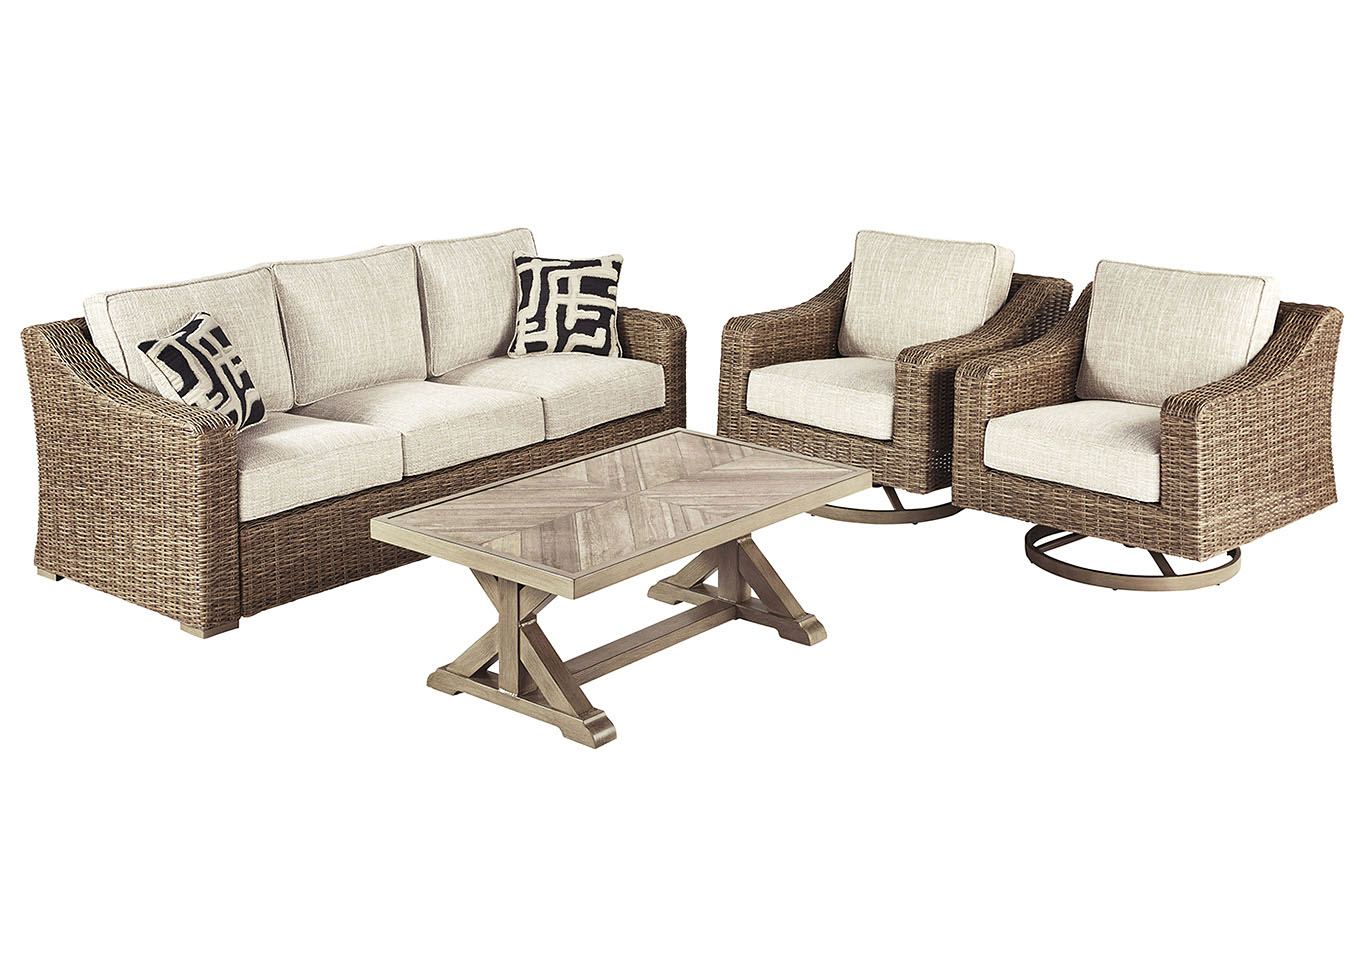 Beachcroft Beige 4 Piece Chat Set,Outdoor By Ashley